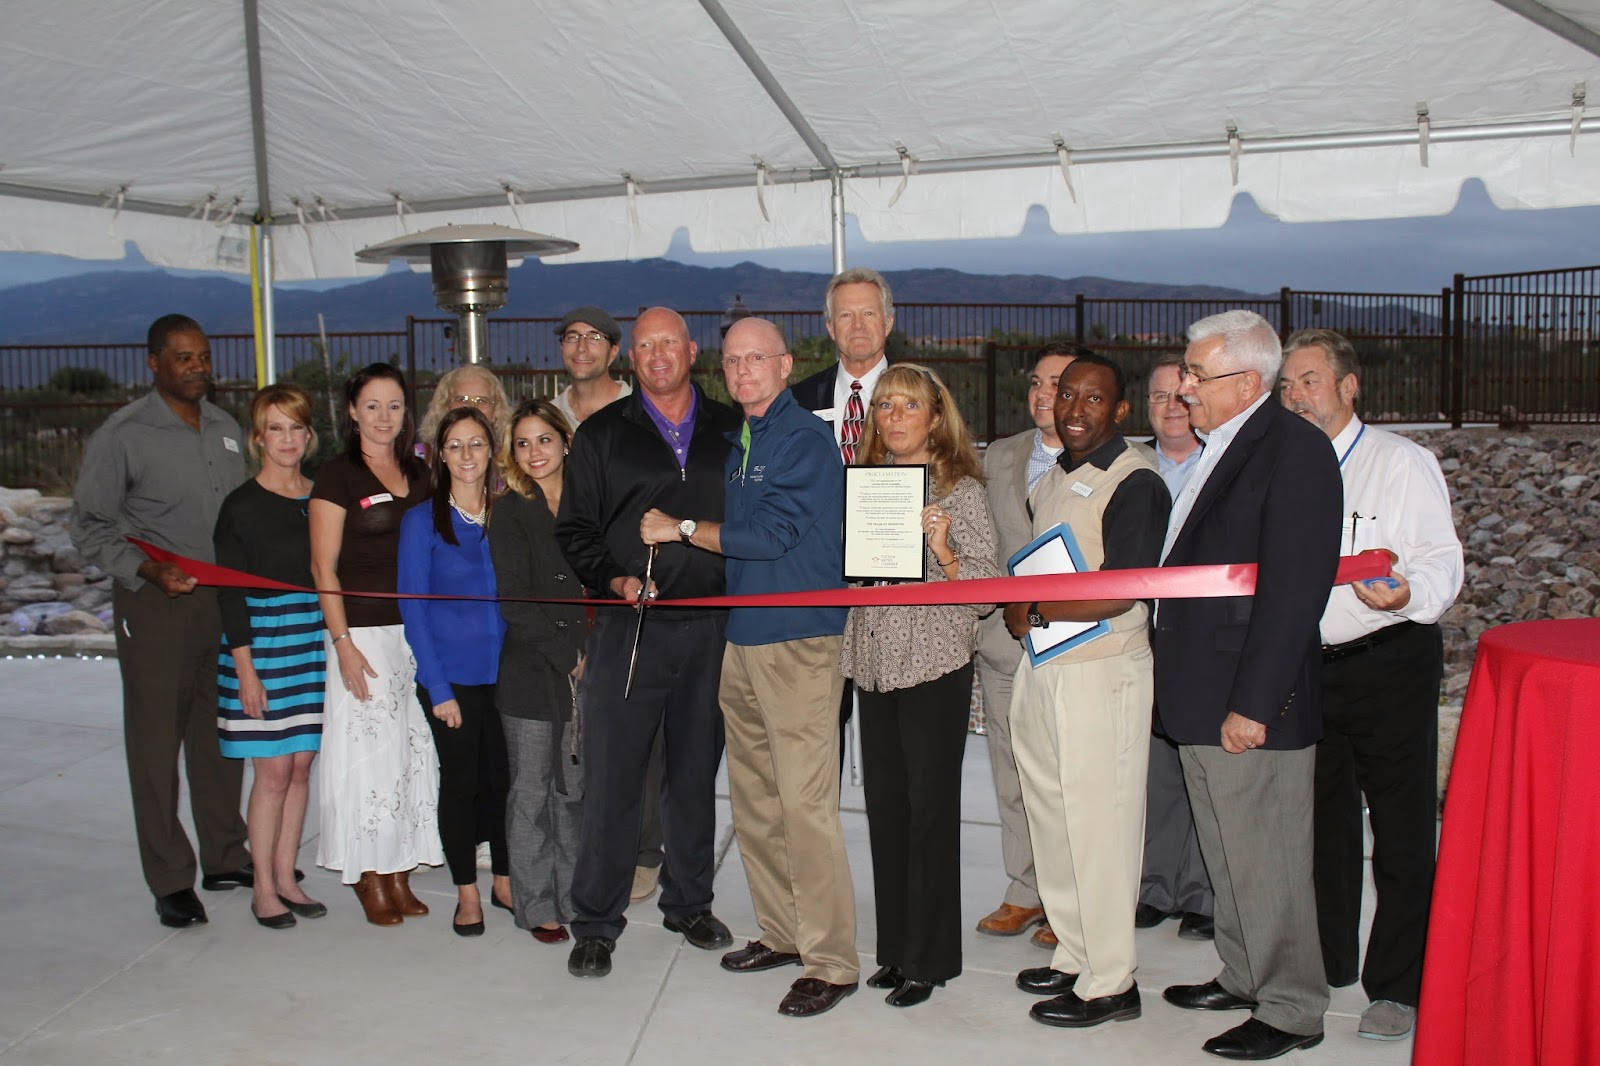 The Villas at Houghton celebrates the expansion of their assisted living & memory care neighborhood with the opening of the ninth custom villa.  The neighborhood offers residents the comfort of home regardless of their cognitive or physical abilities.  Round the clock caregivers ensure the well-being of each resident.